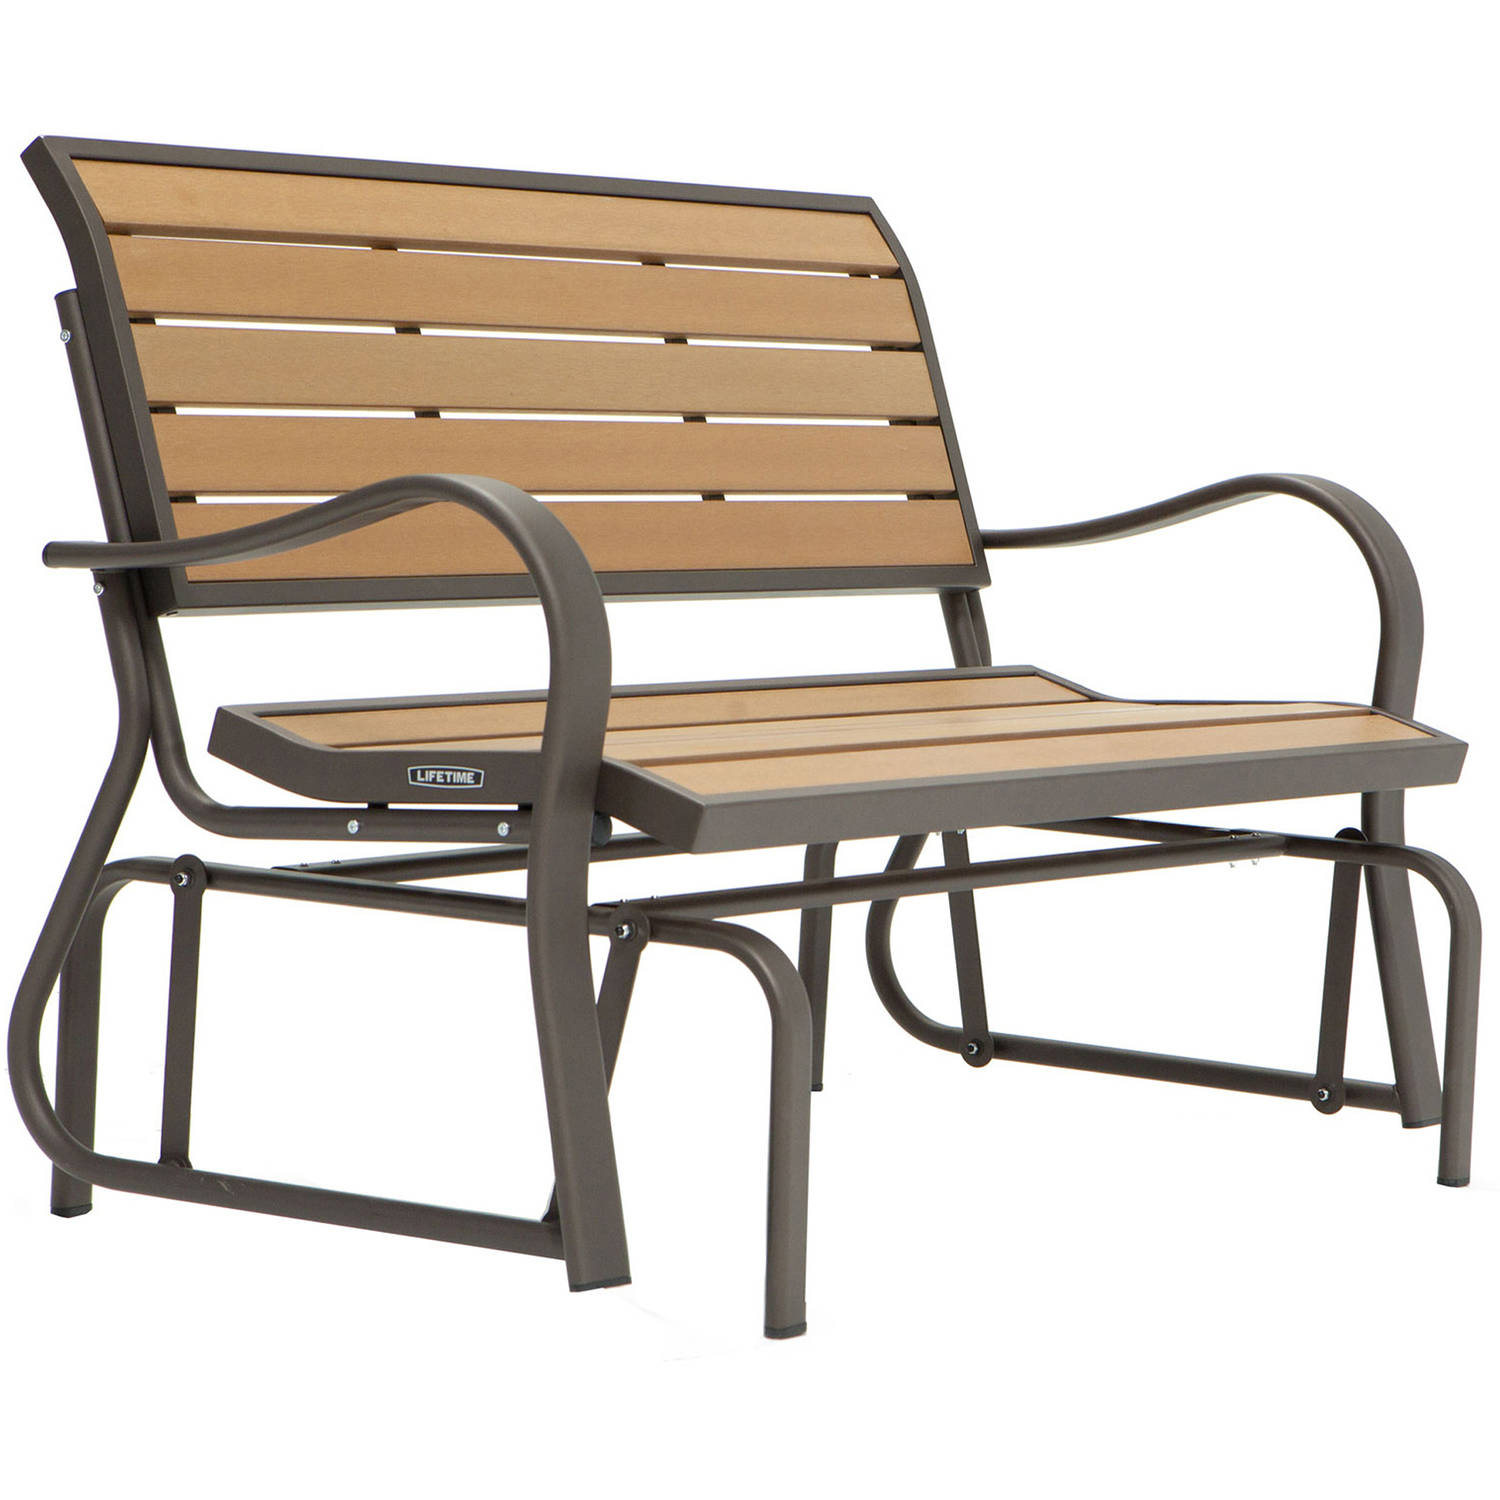 Lifetime Wood Alternative Glider Bench, 60055   Walmart.com